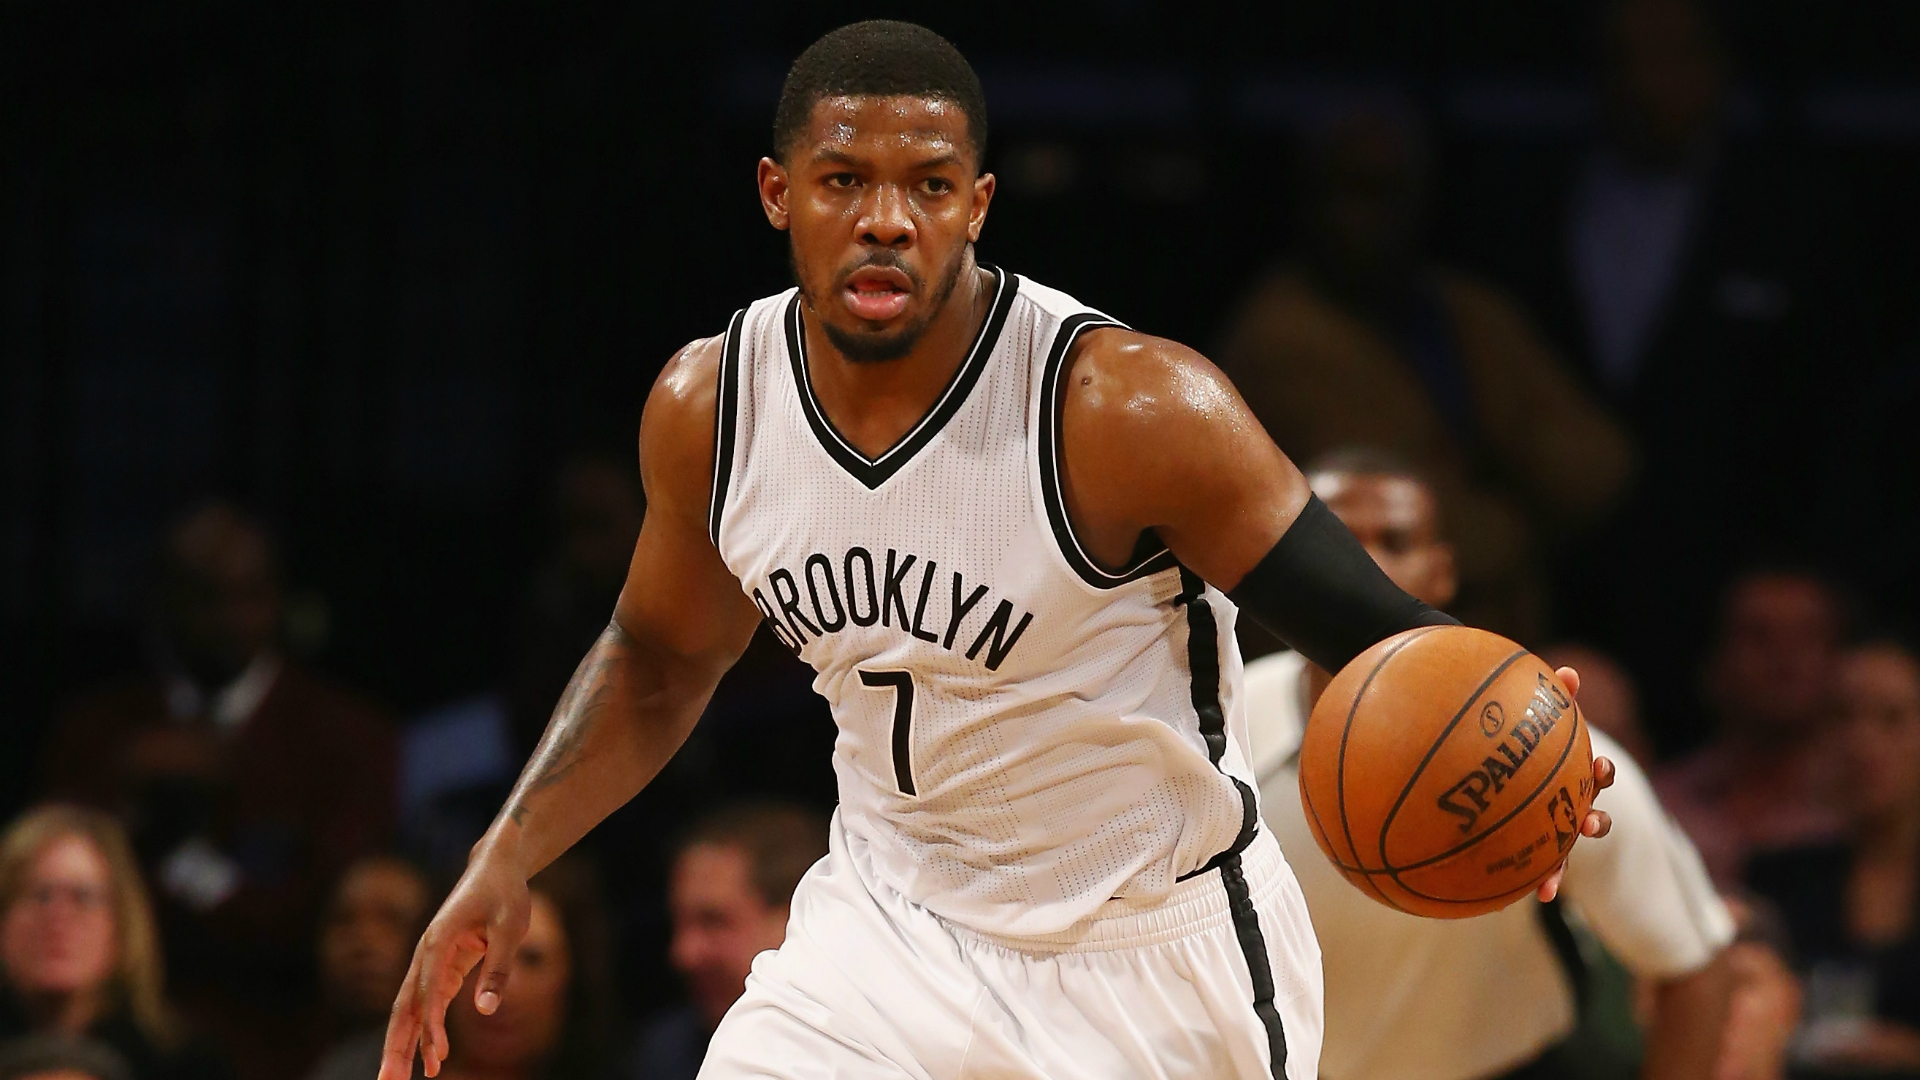 Joe Johnson Signs With Rockets (Not Celtics) After Buyout